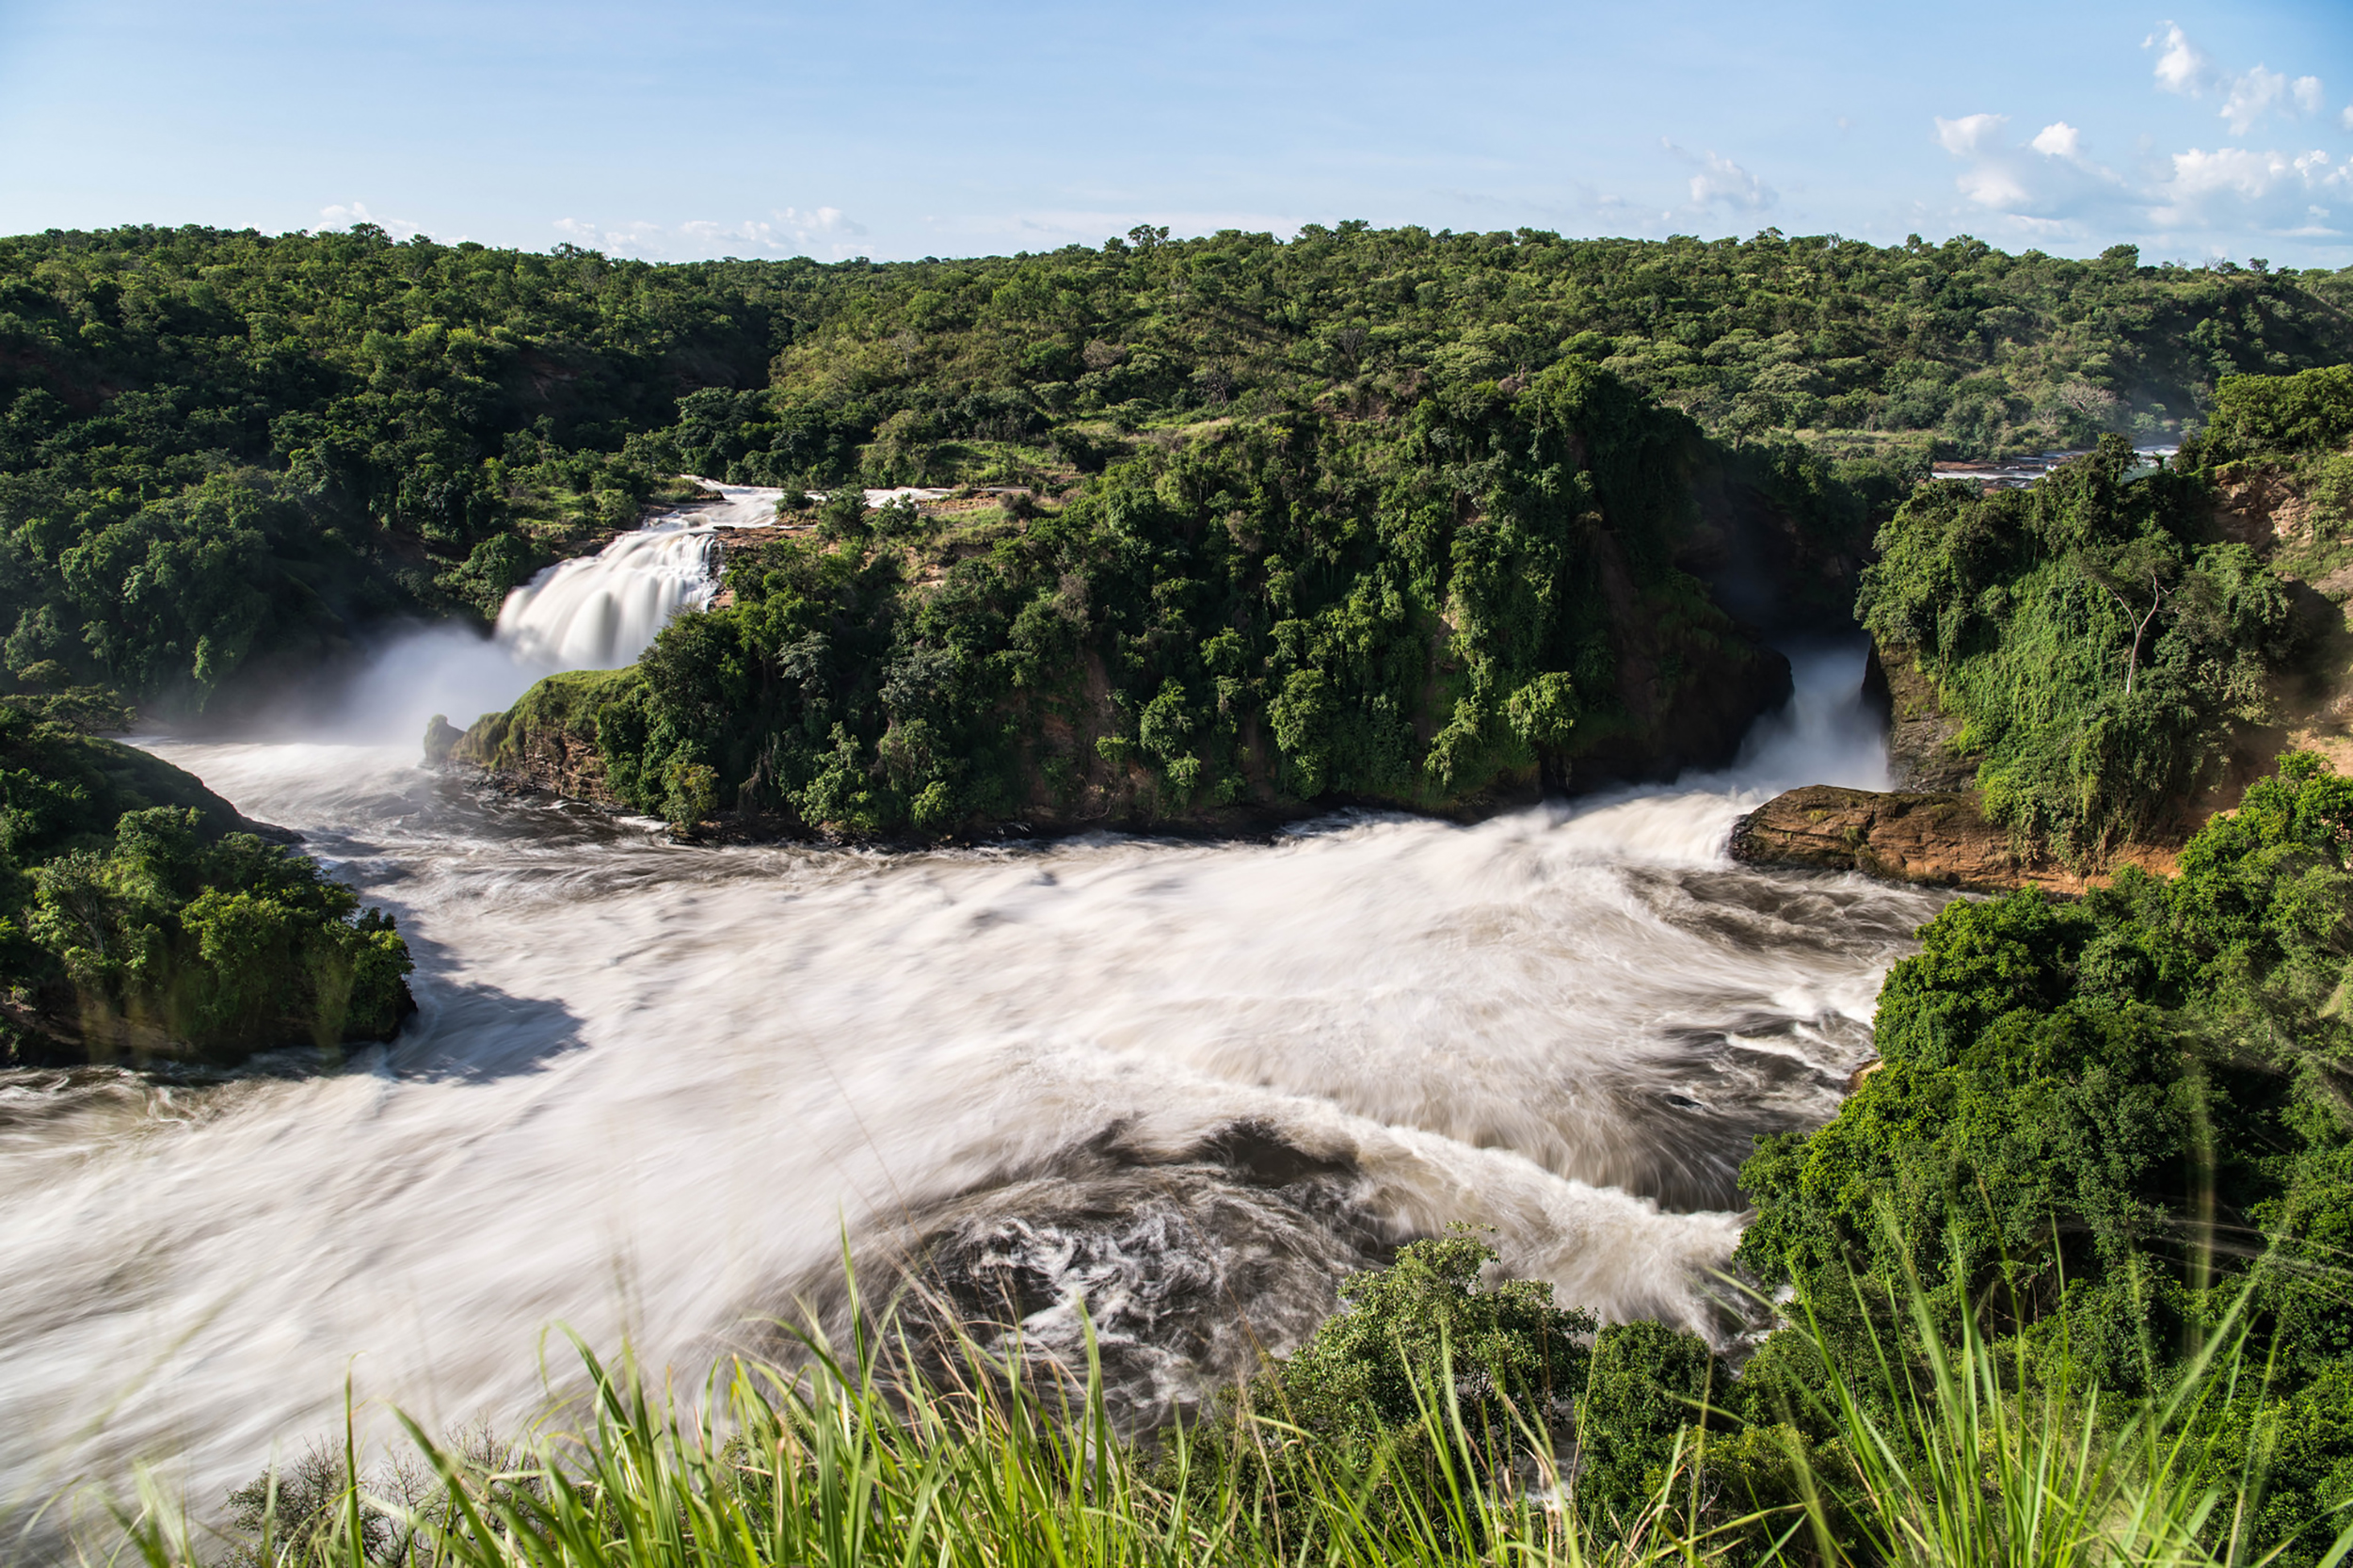 Stunning views over Murchison Falls